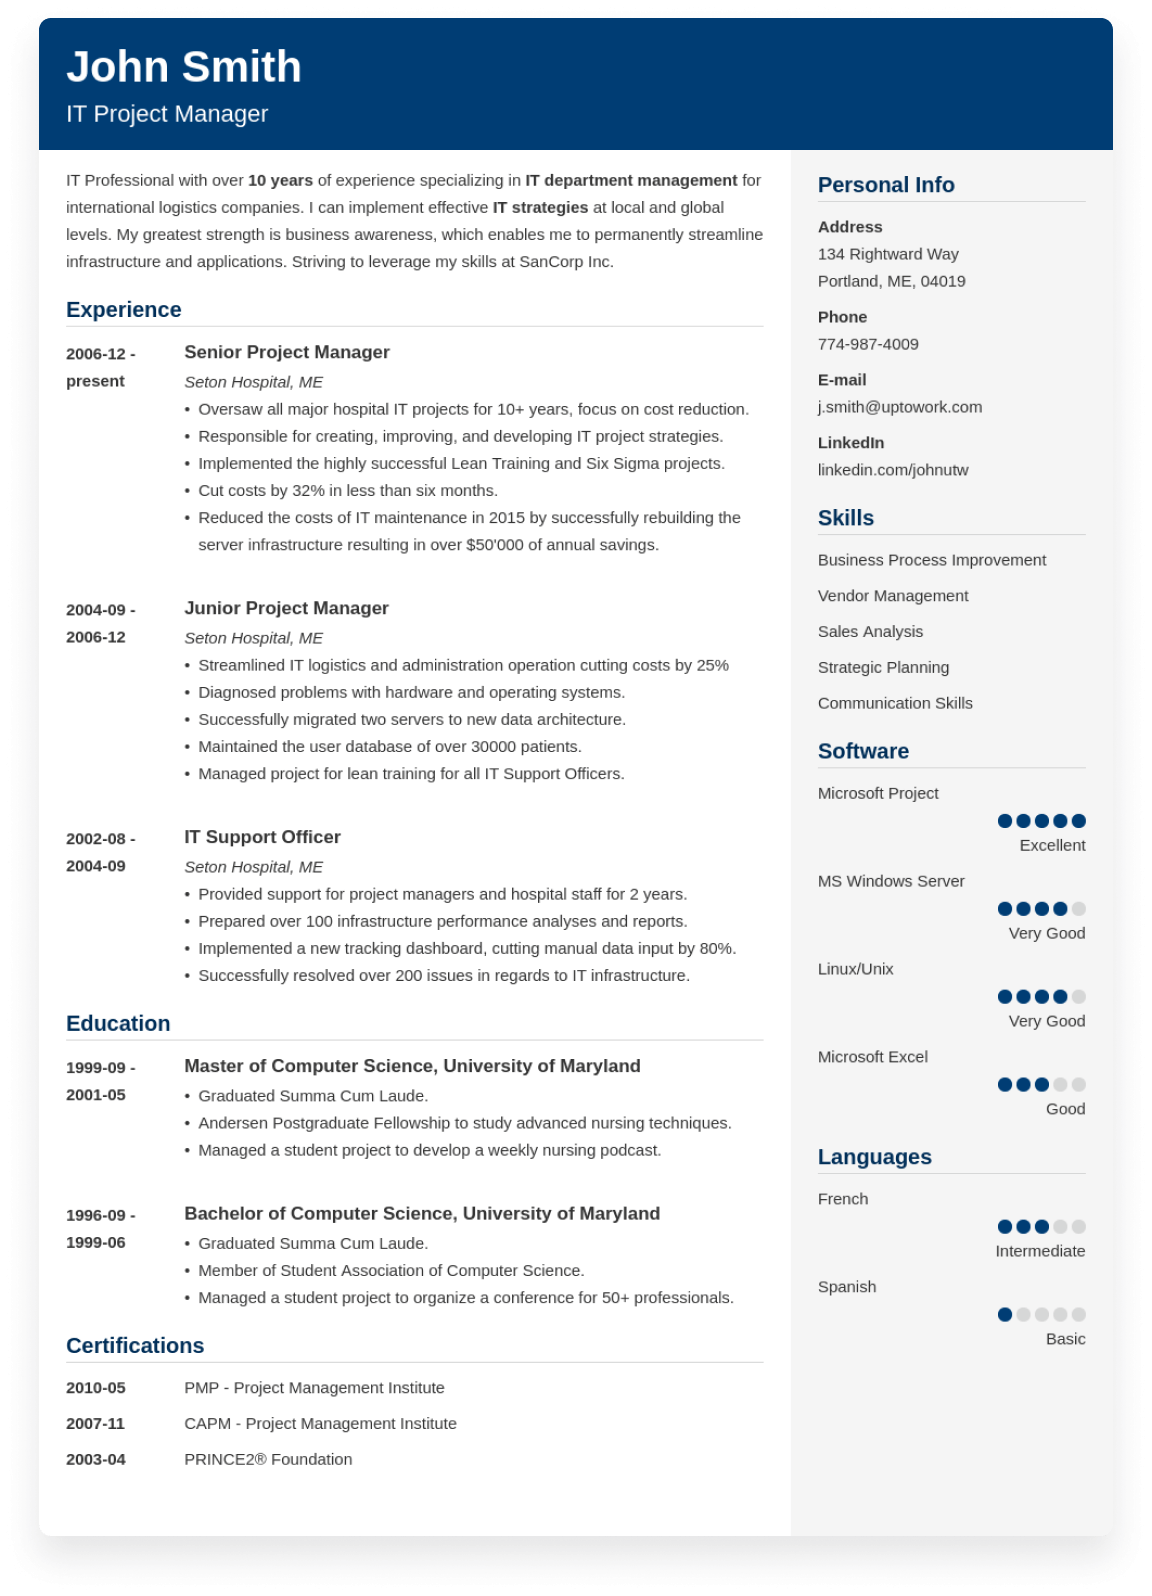 50+ Free CV Examples: a Sample Curriculum Vitae for Every Job